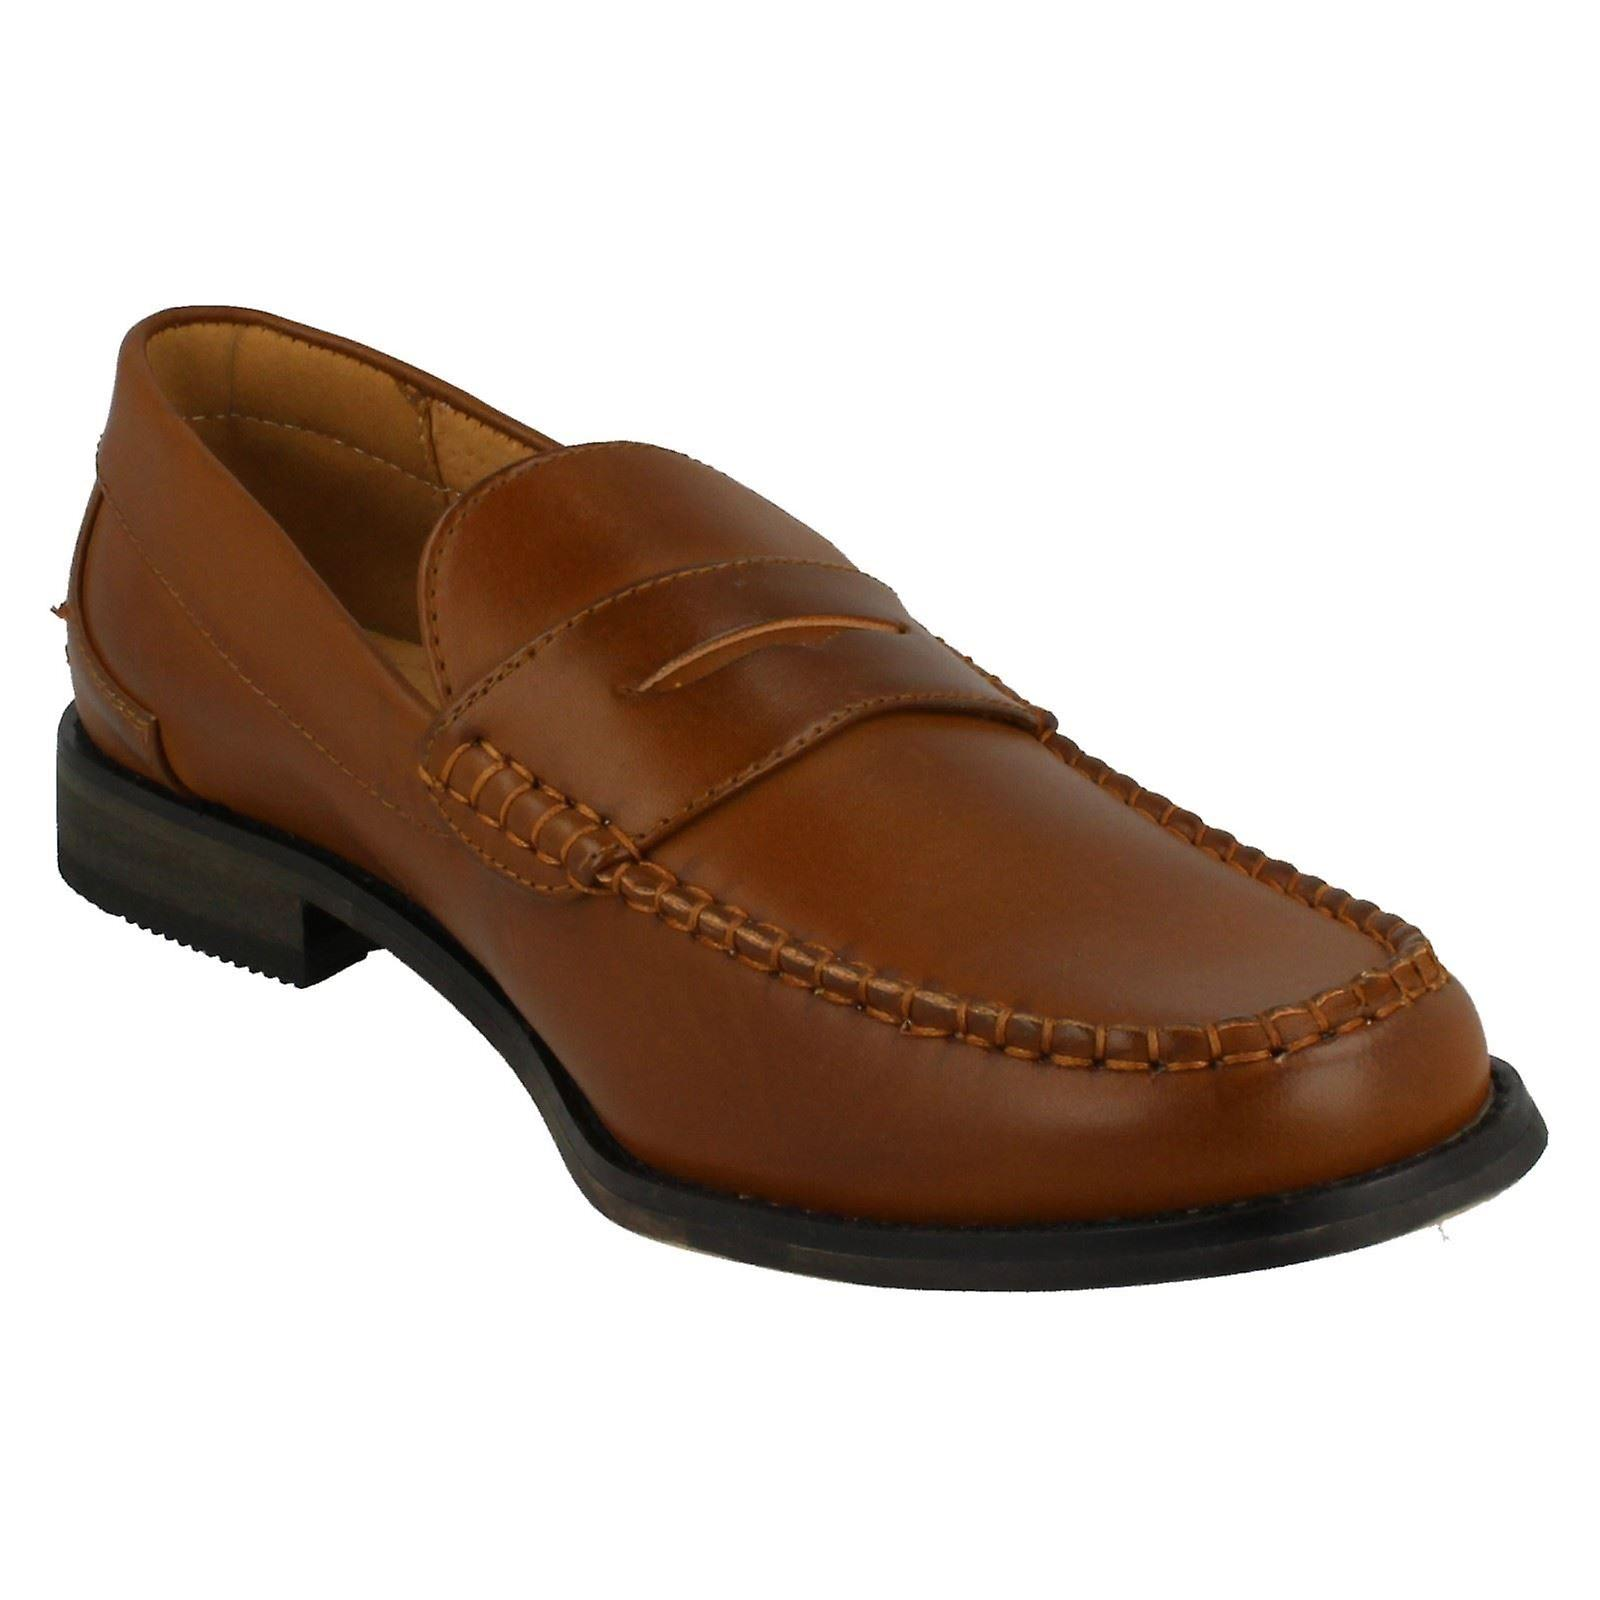 Style Mens Formal A1118 Shoes Loafer Maverick wCHqB0